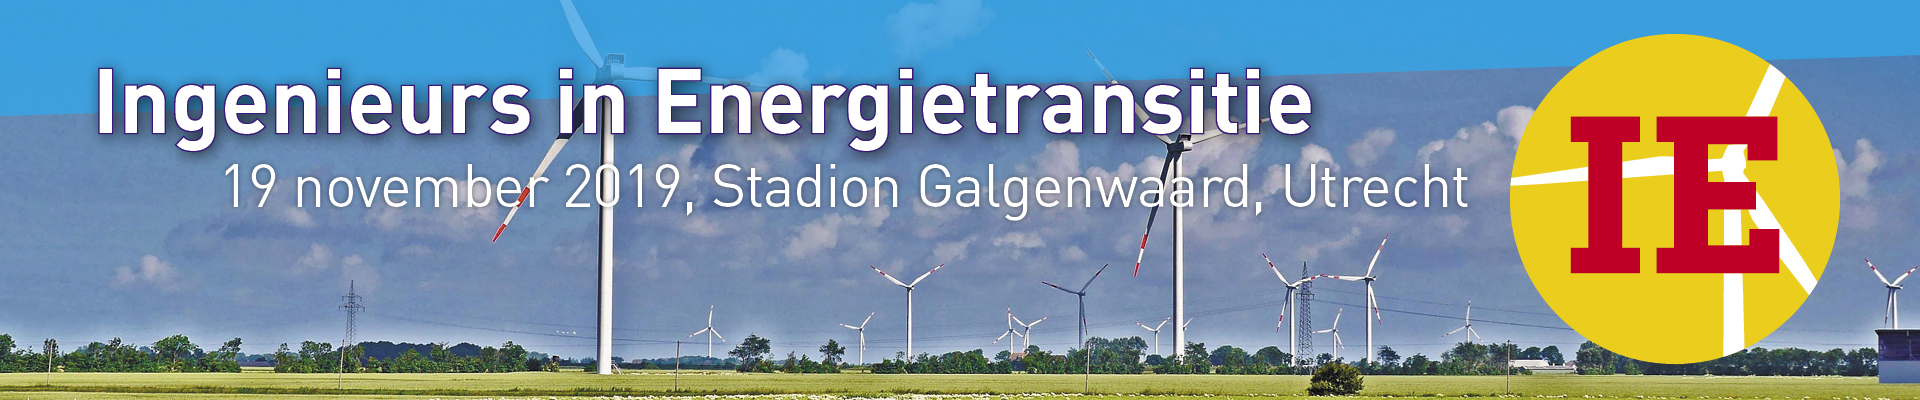 Ingenieurs in Energietransitie 2019